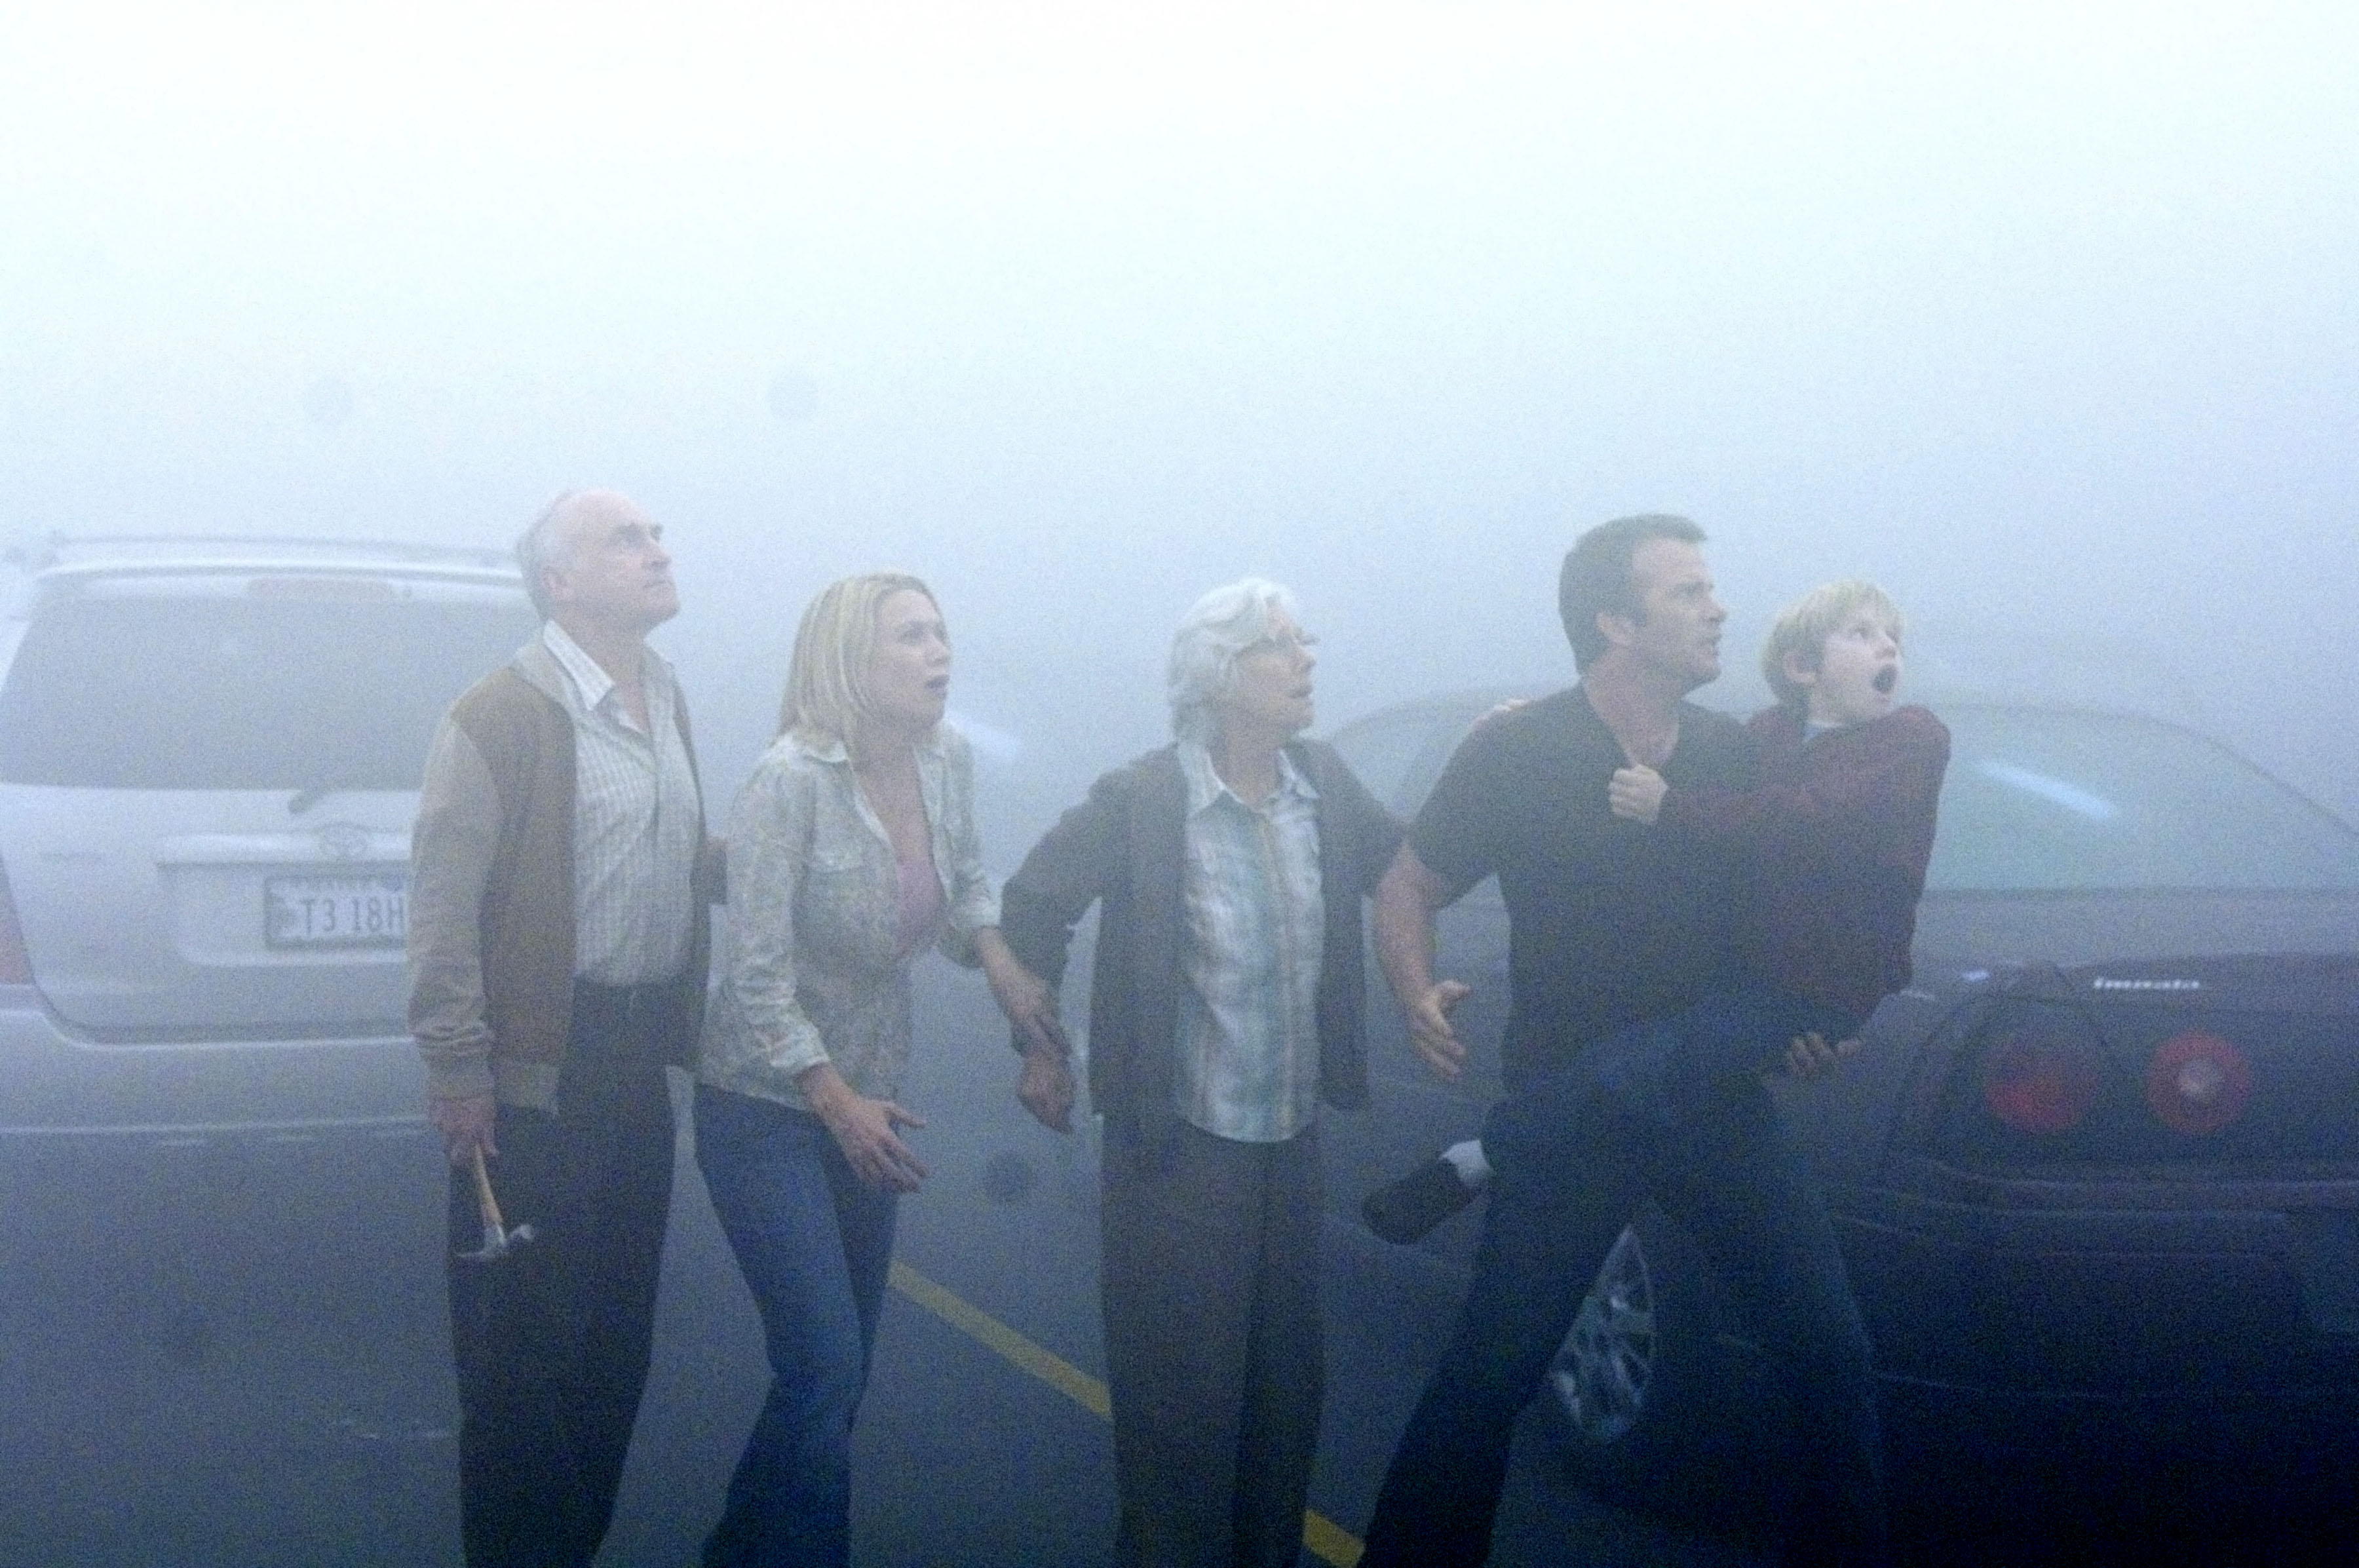 From Optimist to Pragmatist, an Interview with Laurie Holden about <i>The Mist</i>